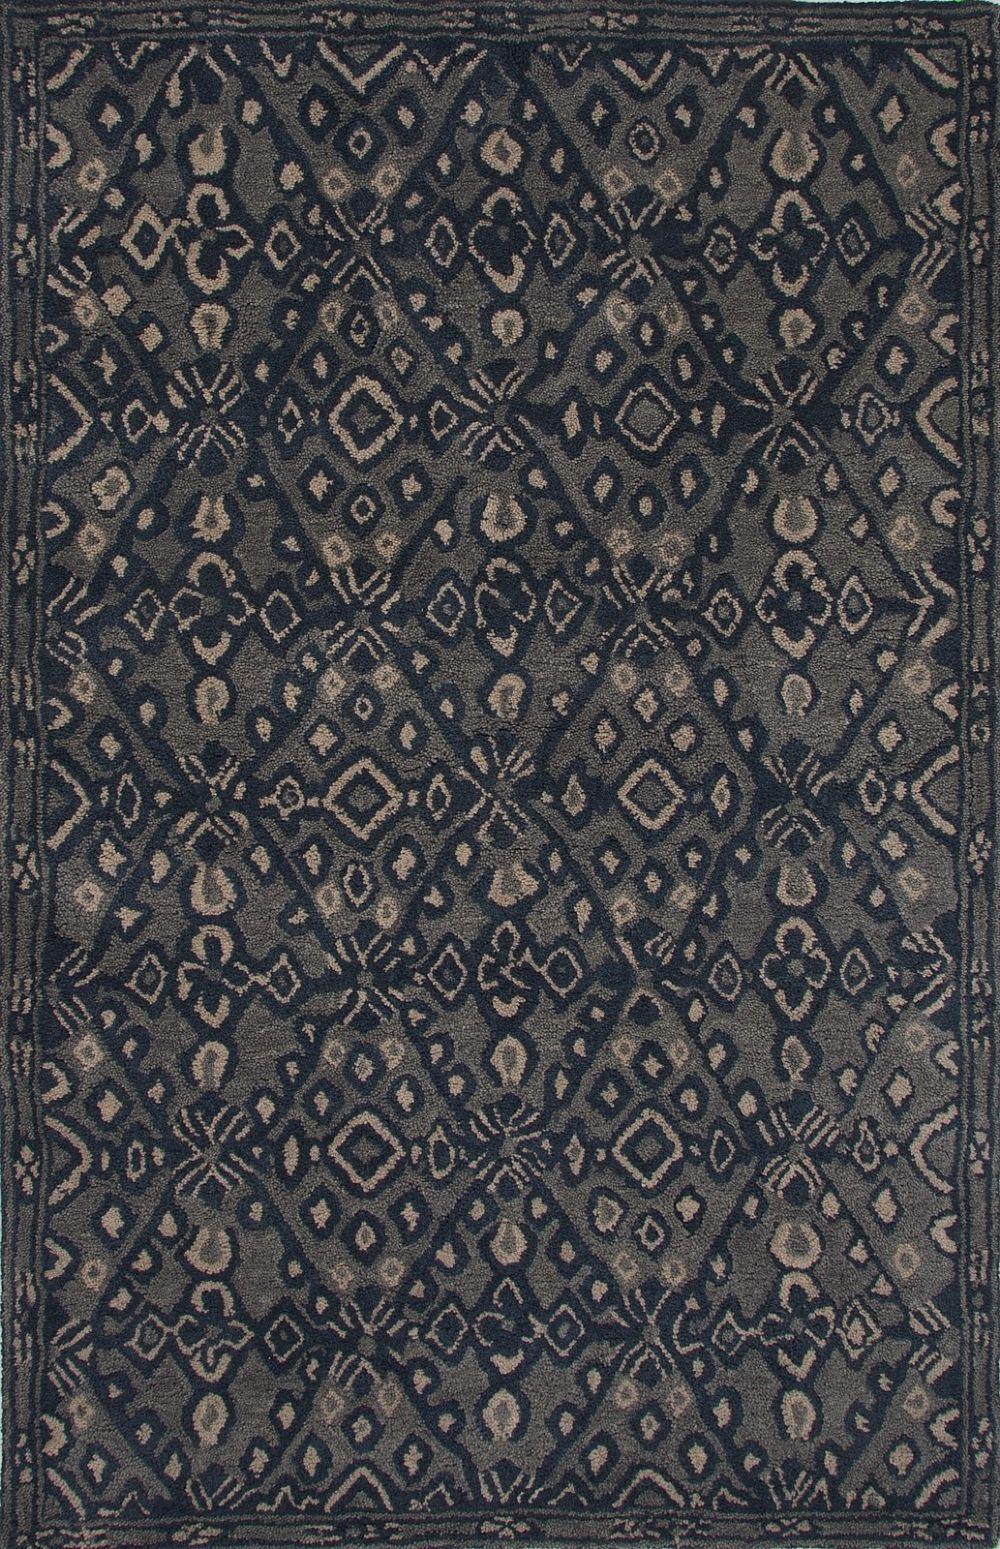 jaipur traditions made modern tufted contemporary area rug collection